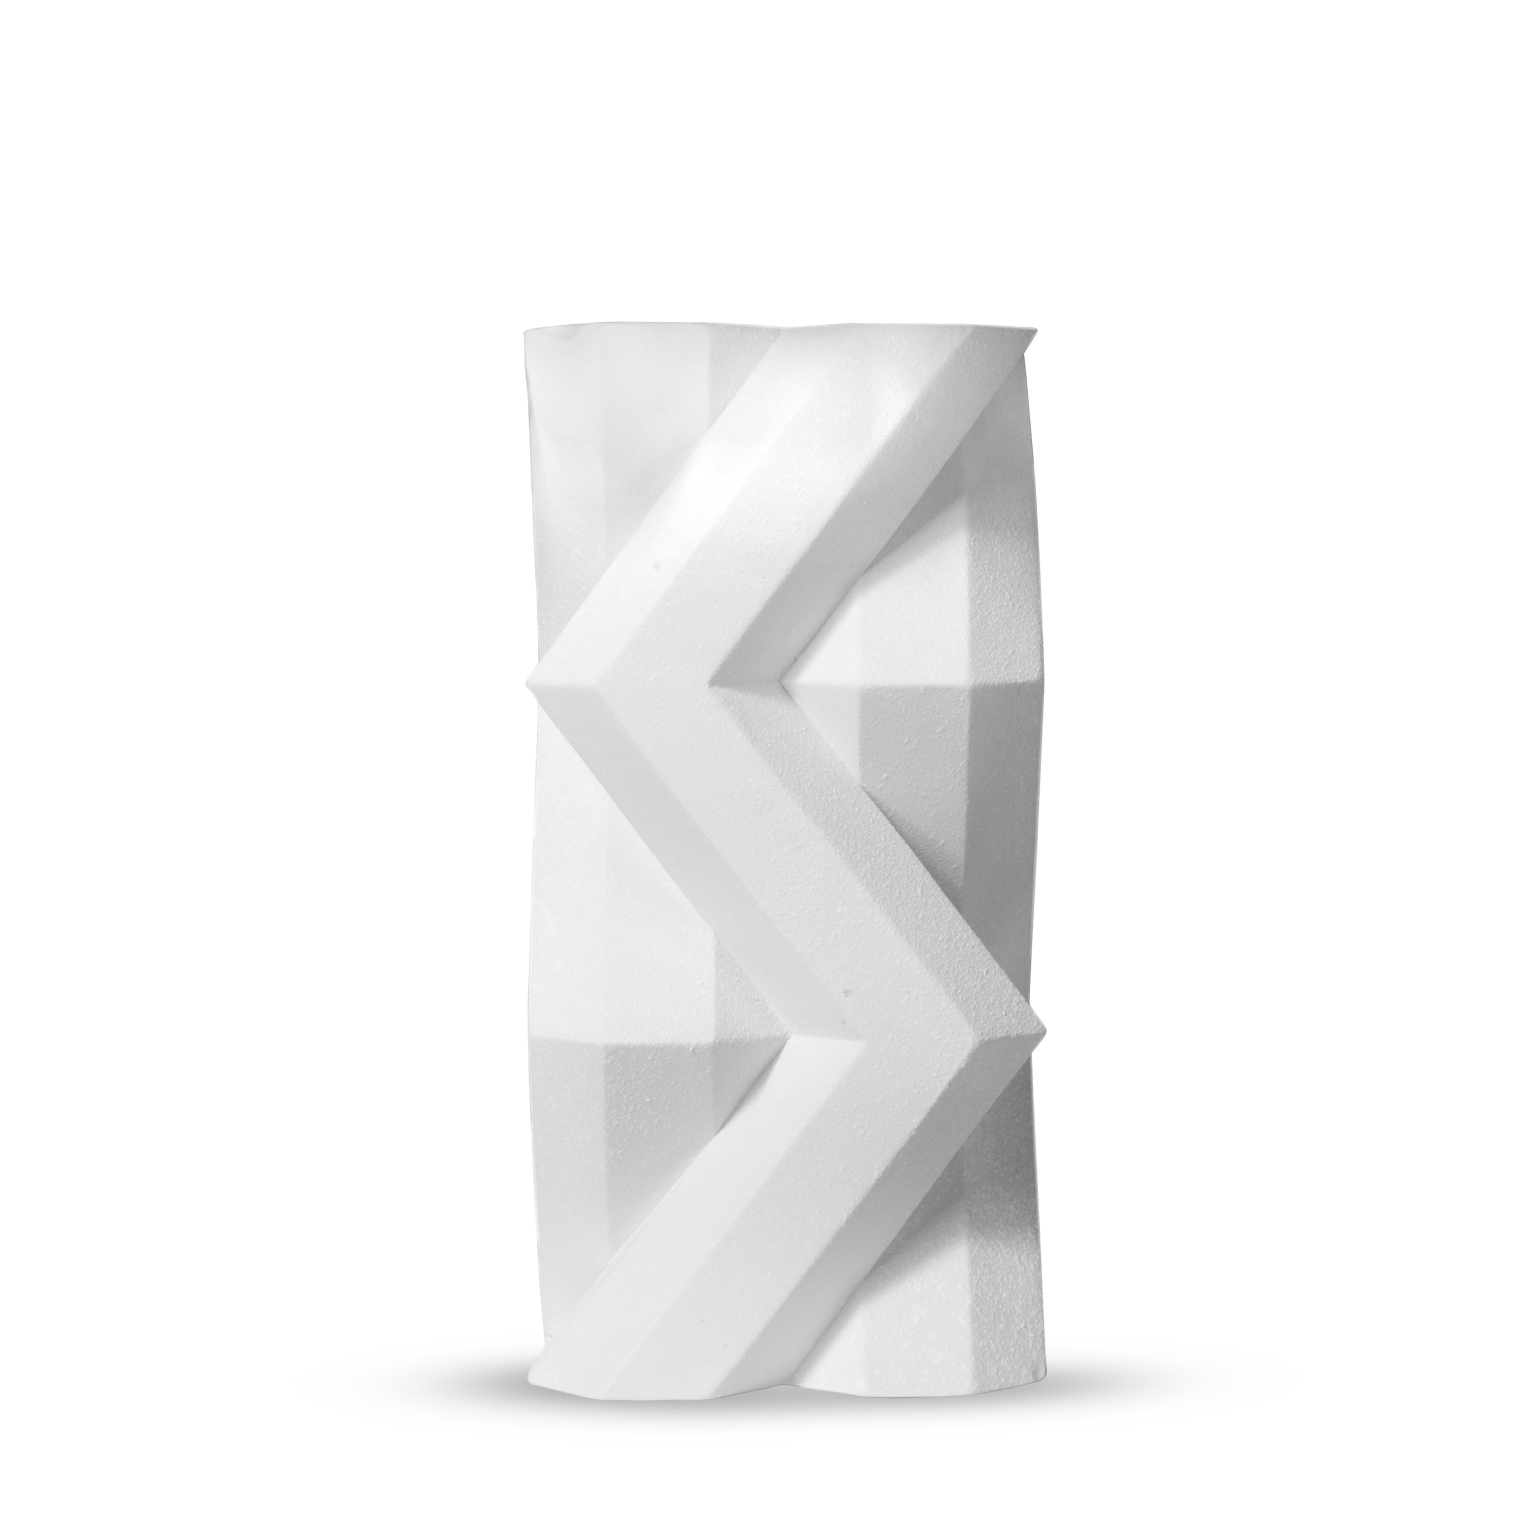 Fortress Tower Vase Crackled White - <p>Designer Lara Bohinc explores the marriage of ancient and futuristic form in the new Fortress Vase range, which has created a more complex geometric and modern structure from the original inspiration of the octagonal towers at the Diocletian Palace in Croatia. The resulting hexagonal blocks interlock and embrace to allow the play of light and shade on the many surfaces and angles. There are four Fortress shapes: the larger Column and Castle (45cm height), the Pillar (30cm height) and the Tower vase (37cm height). These are hand made from ceramic in a small Italian artisanal workshop and come in three finishes: dark gold, bronze and speckled white.</p>  | Matter of Stuff